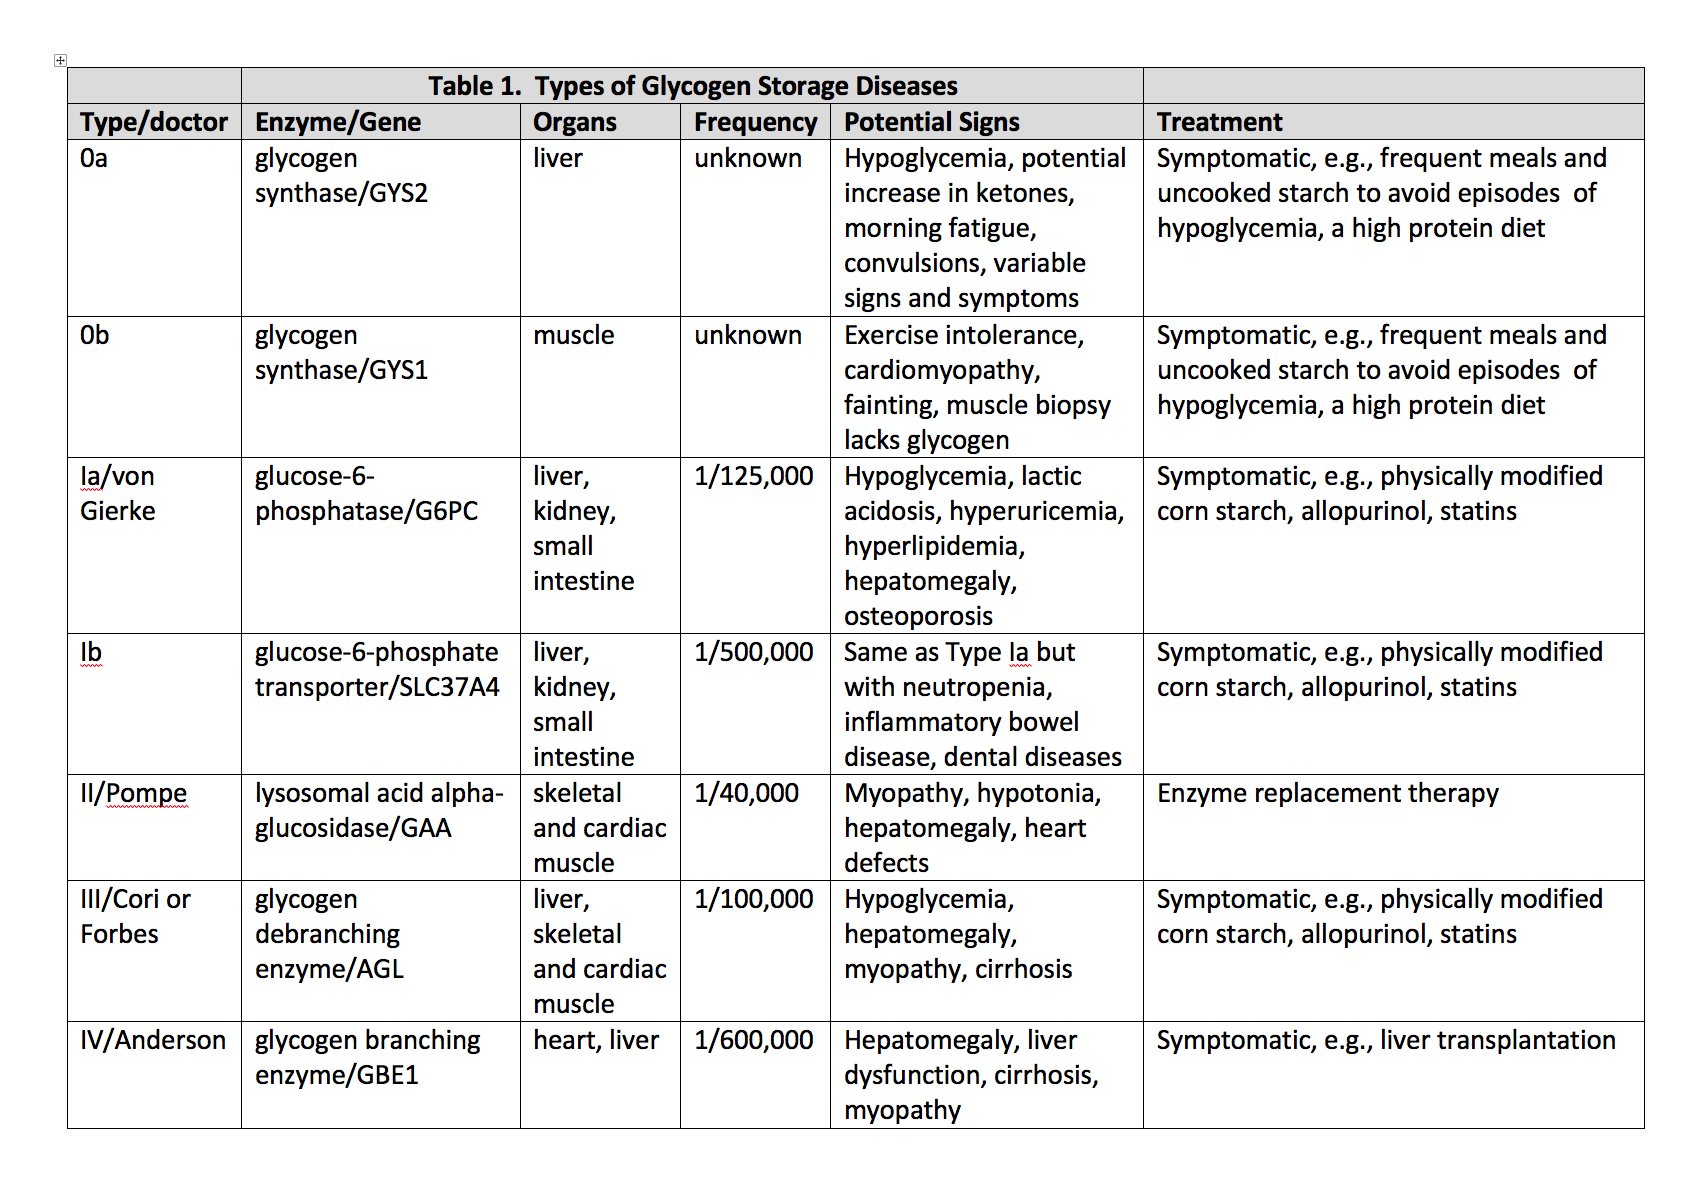 Types of glycogen storage diseases